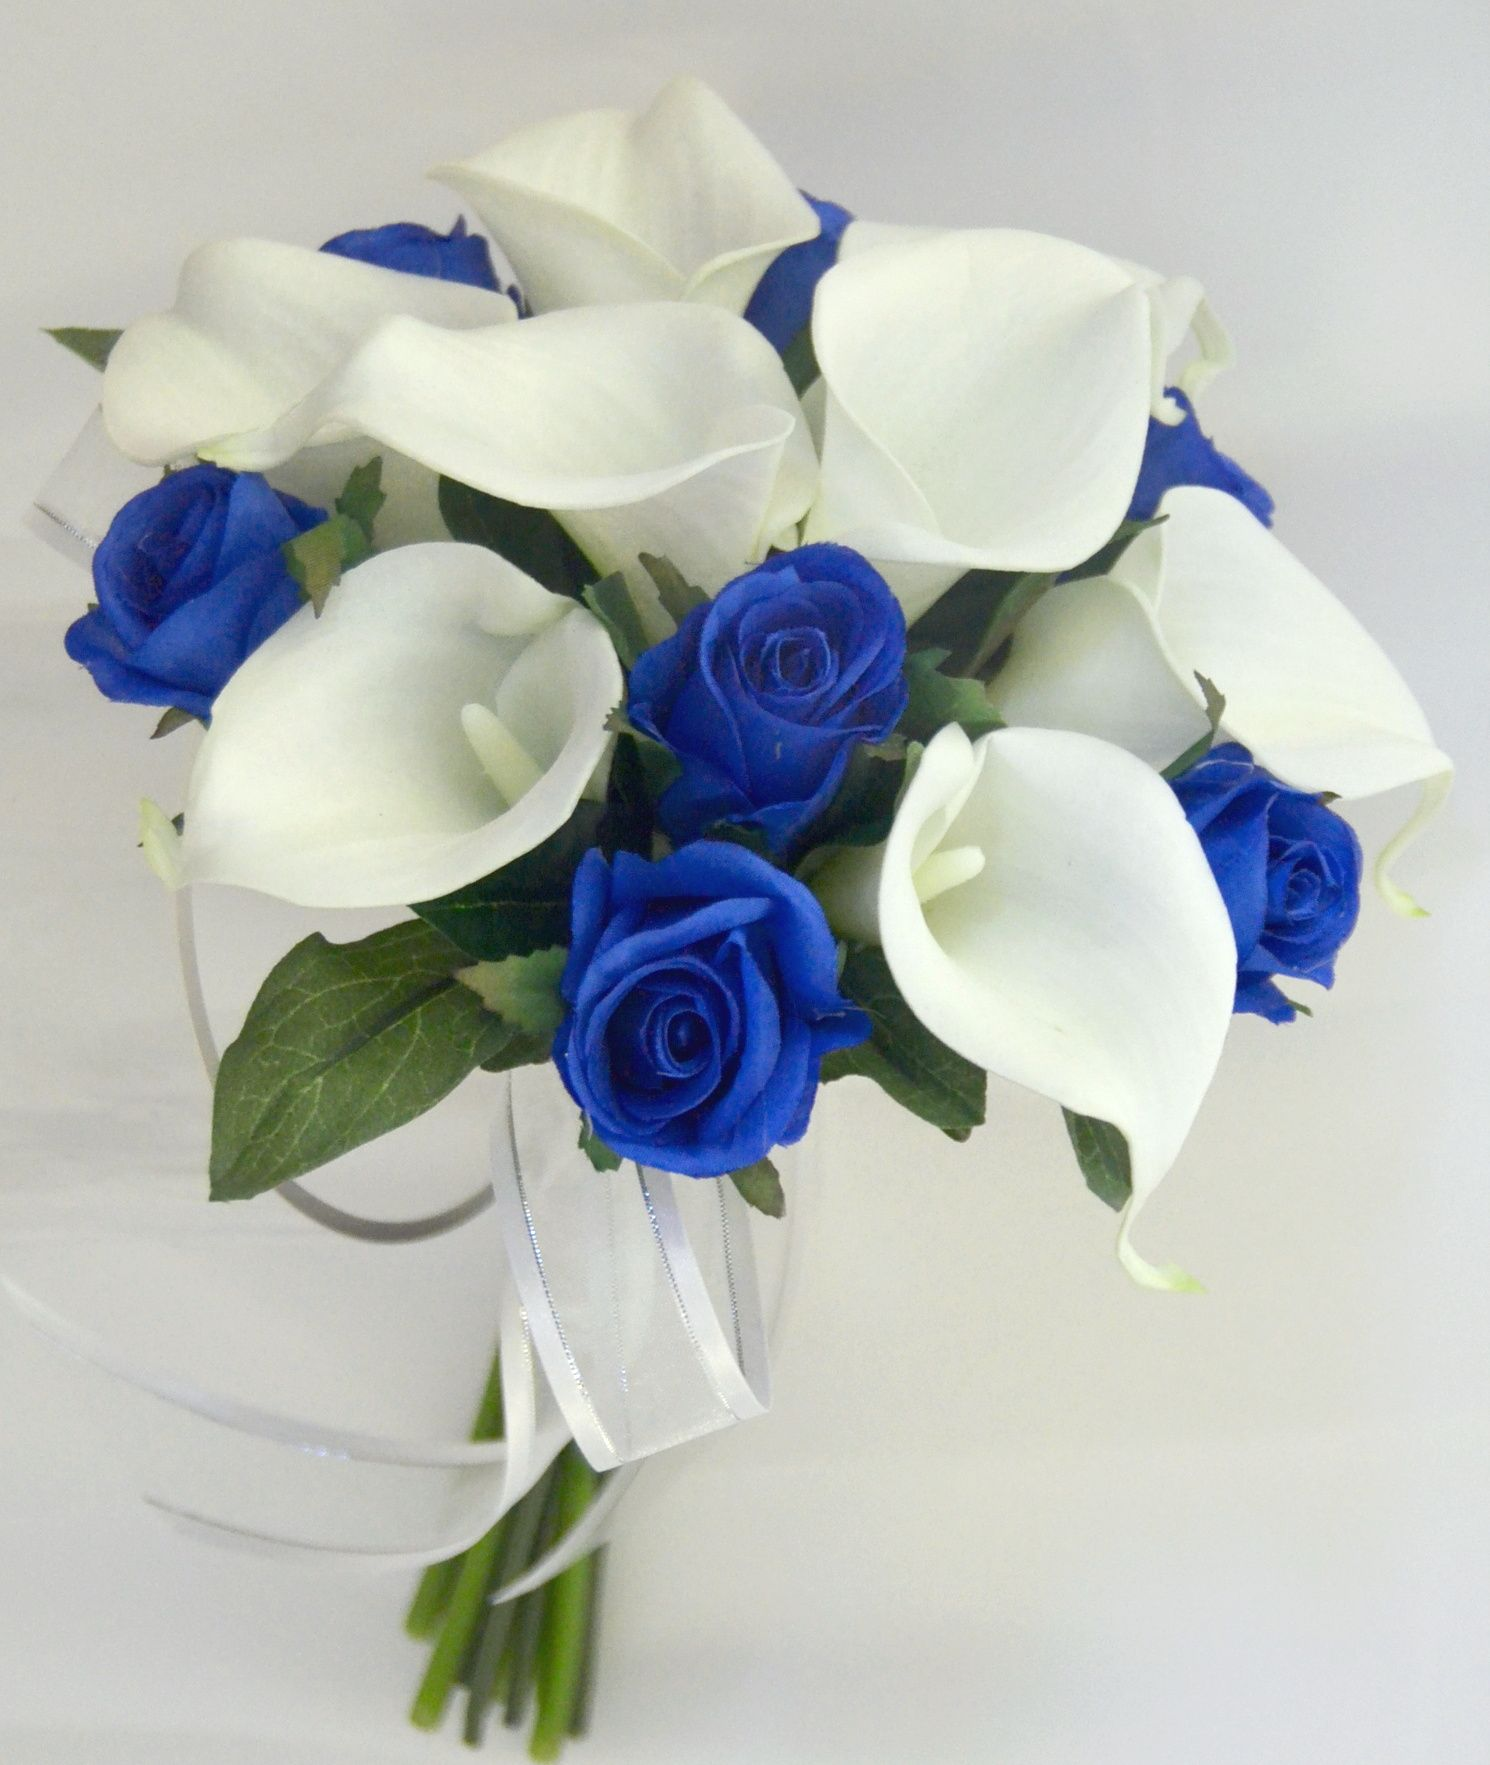 Blue rose calla lily bouquet | Blue wedding bouquets and ...